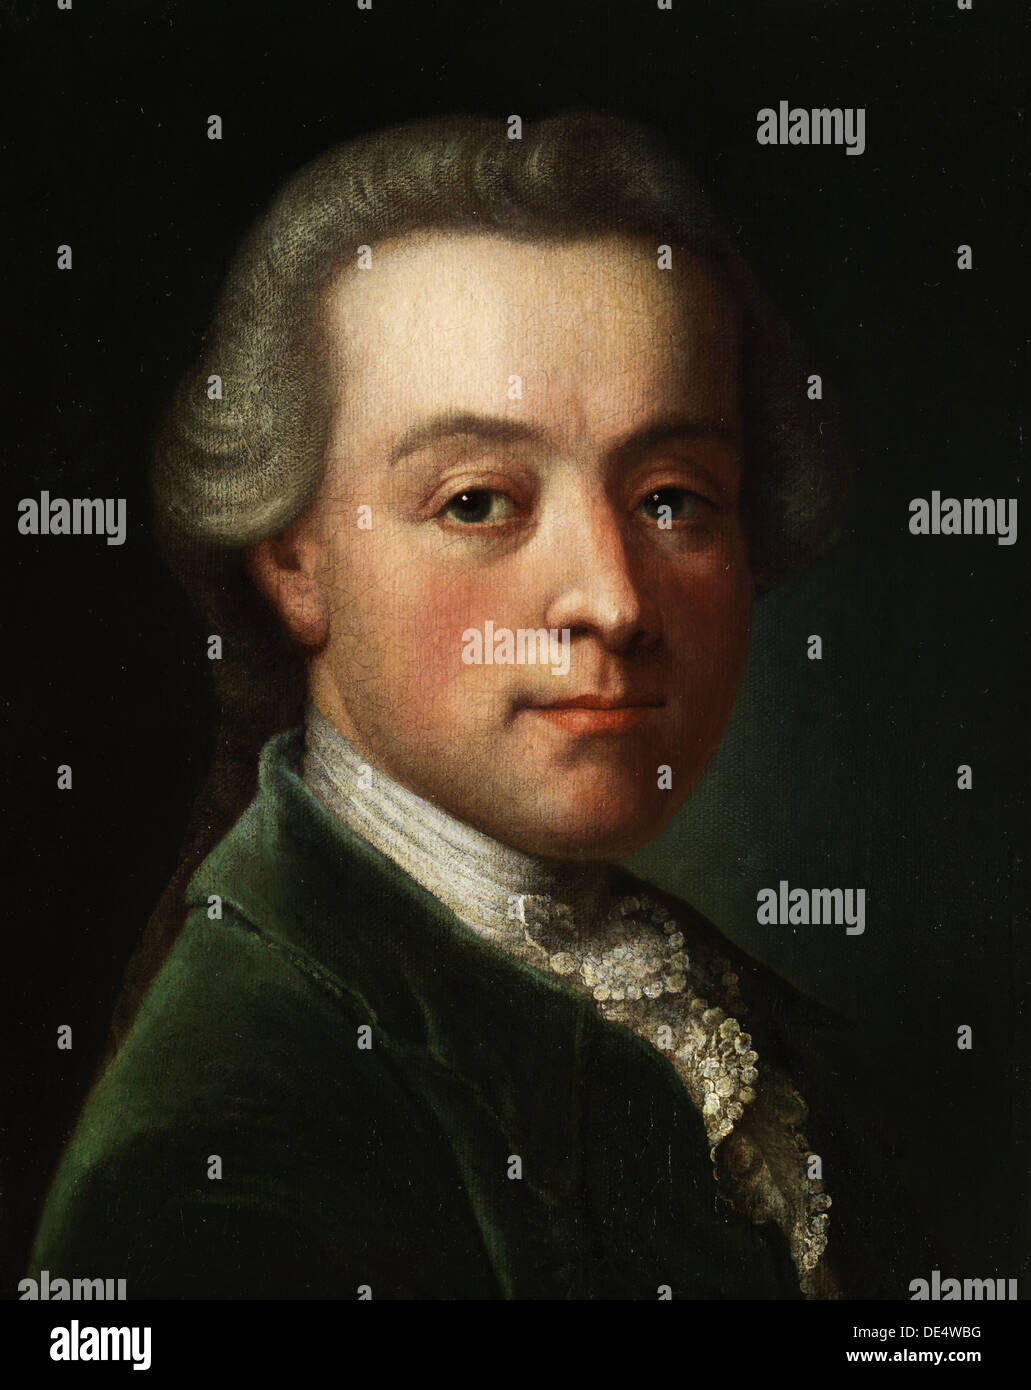 Portrait of the composer Wolfgang Amadeus Mozart (1756-1791), c. 1789. Artist: Anonymous - Stock Image